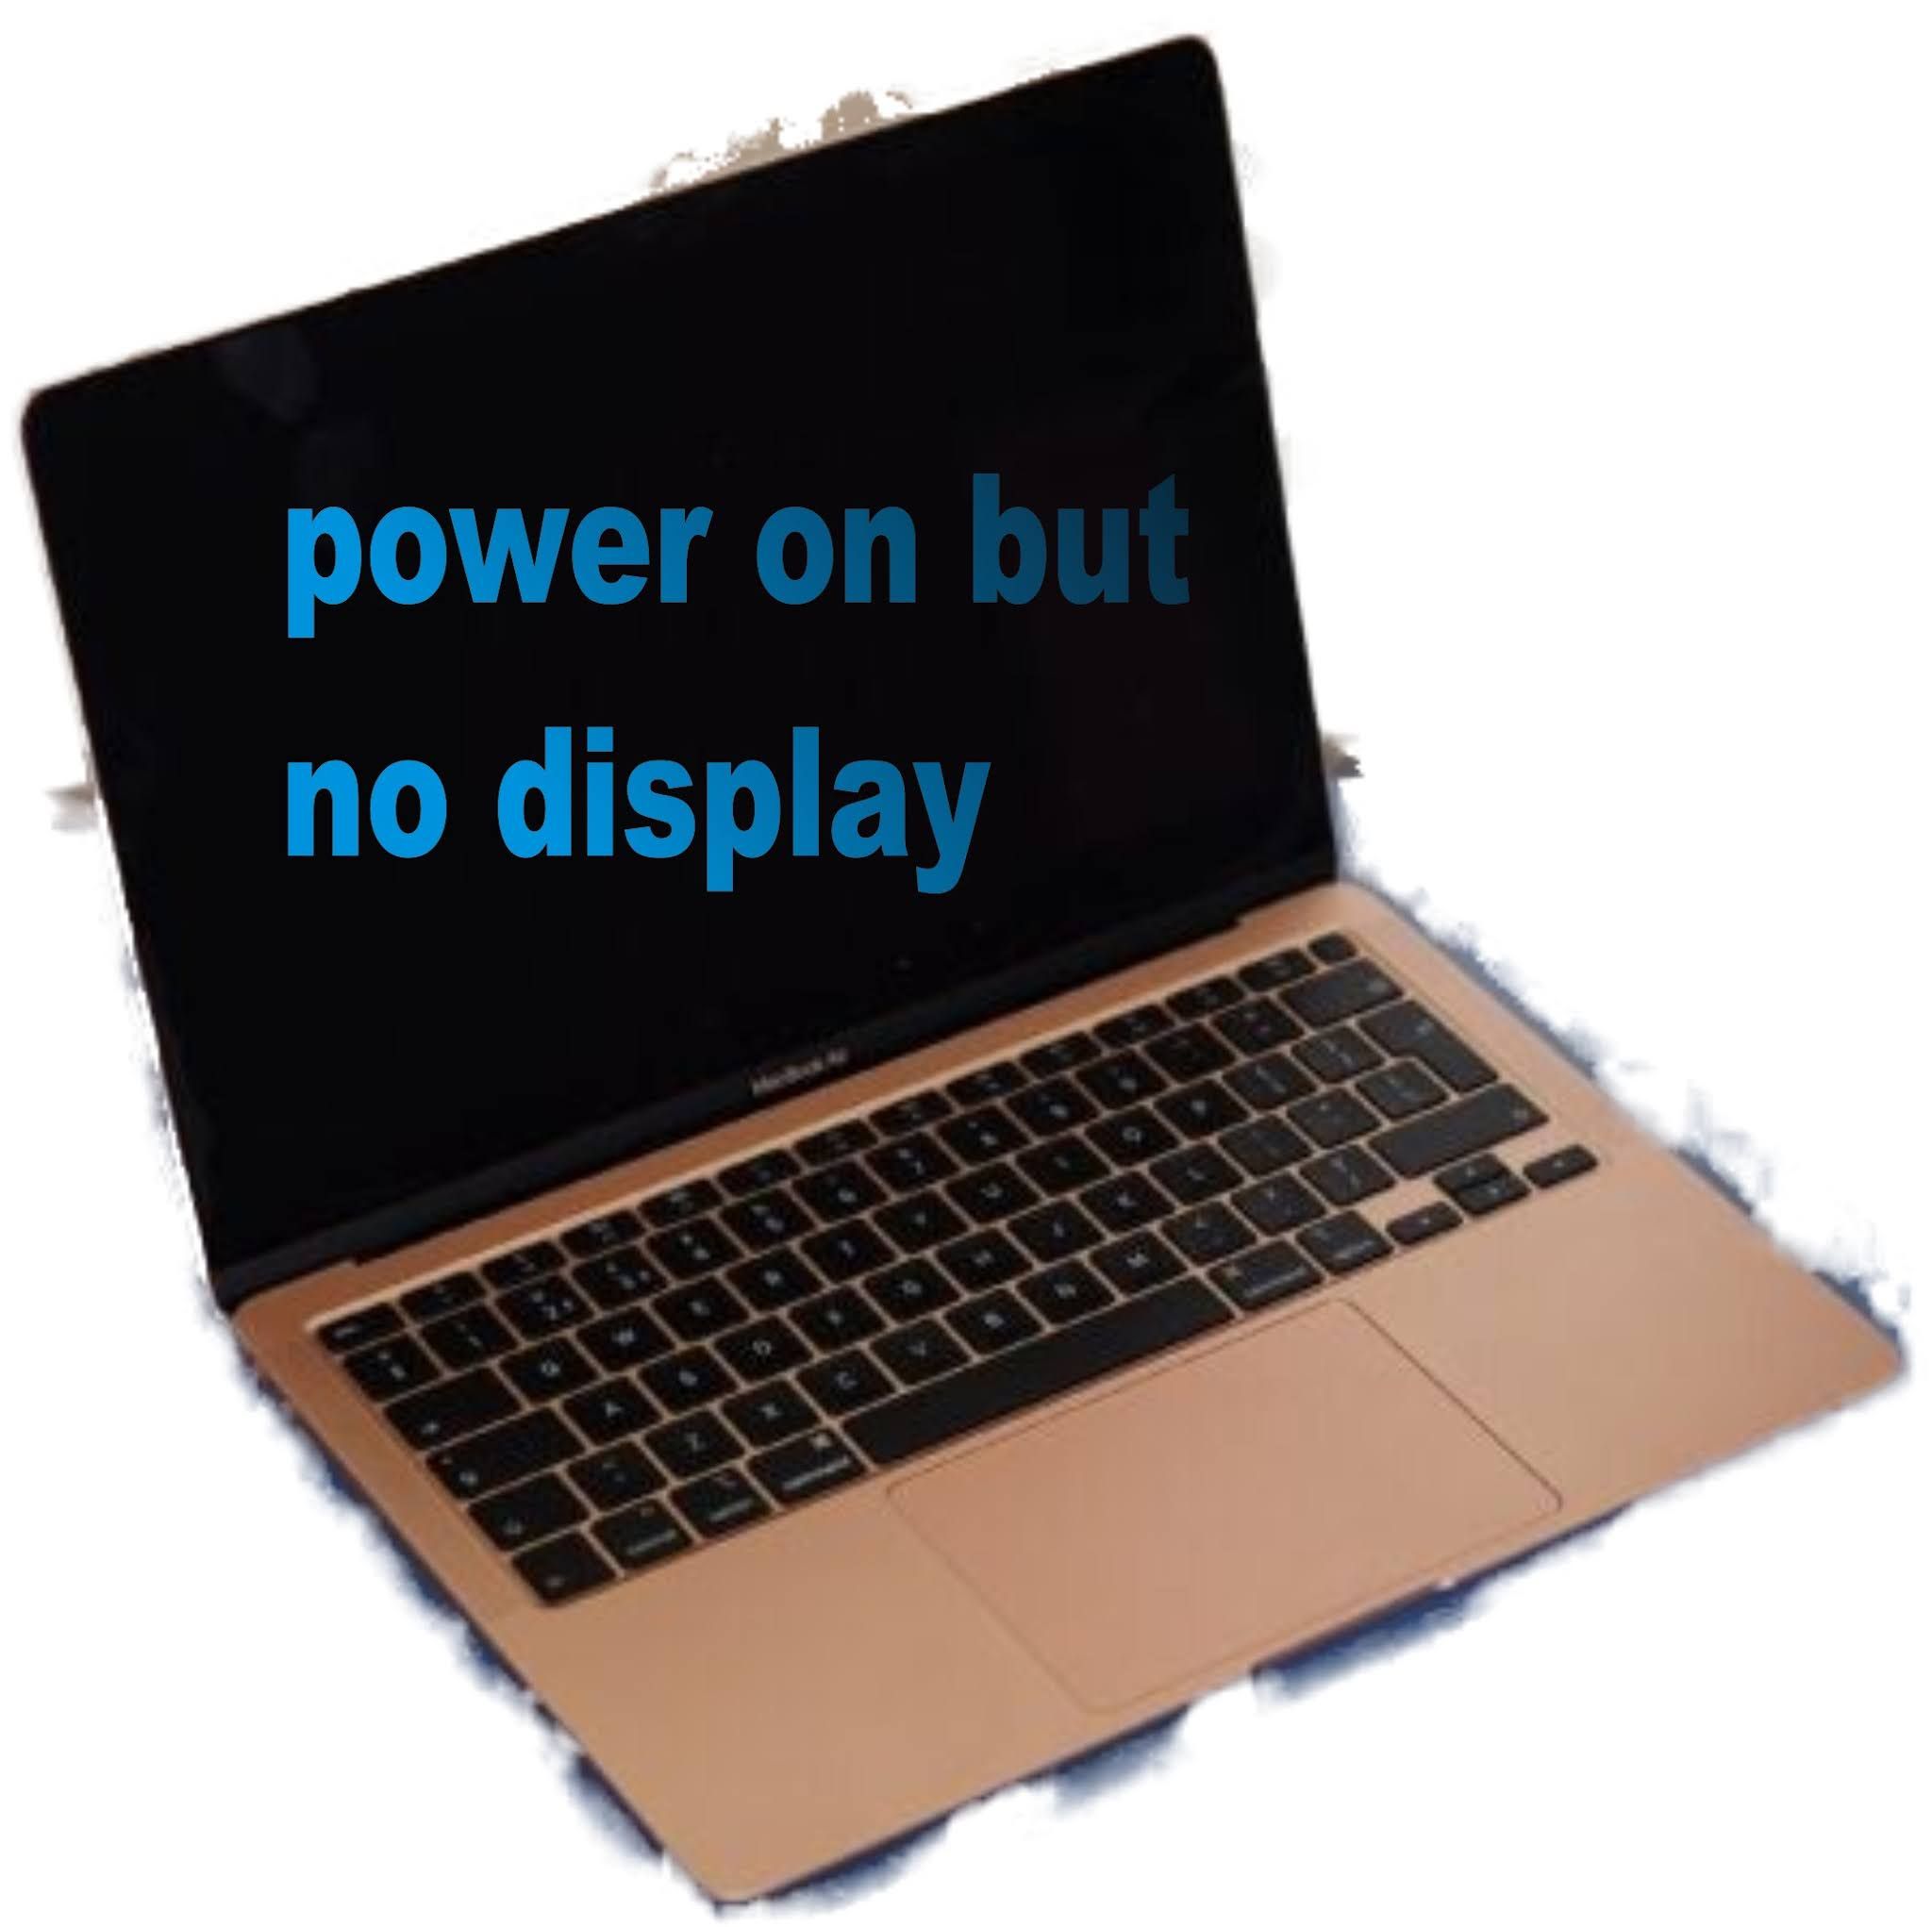 power on but no display